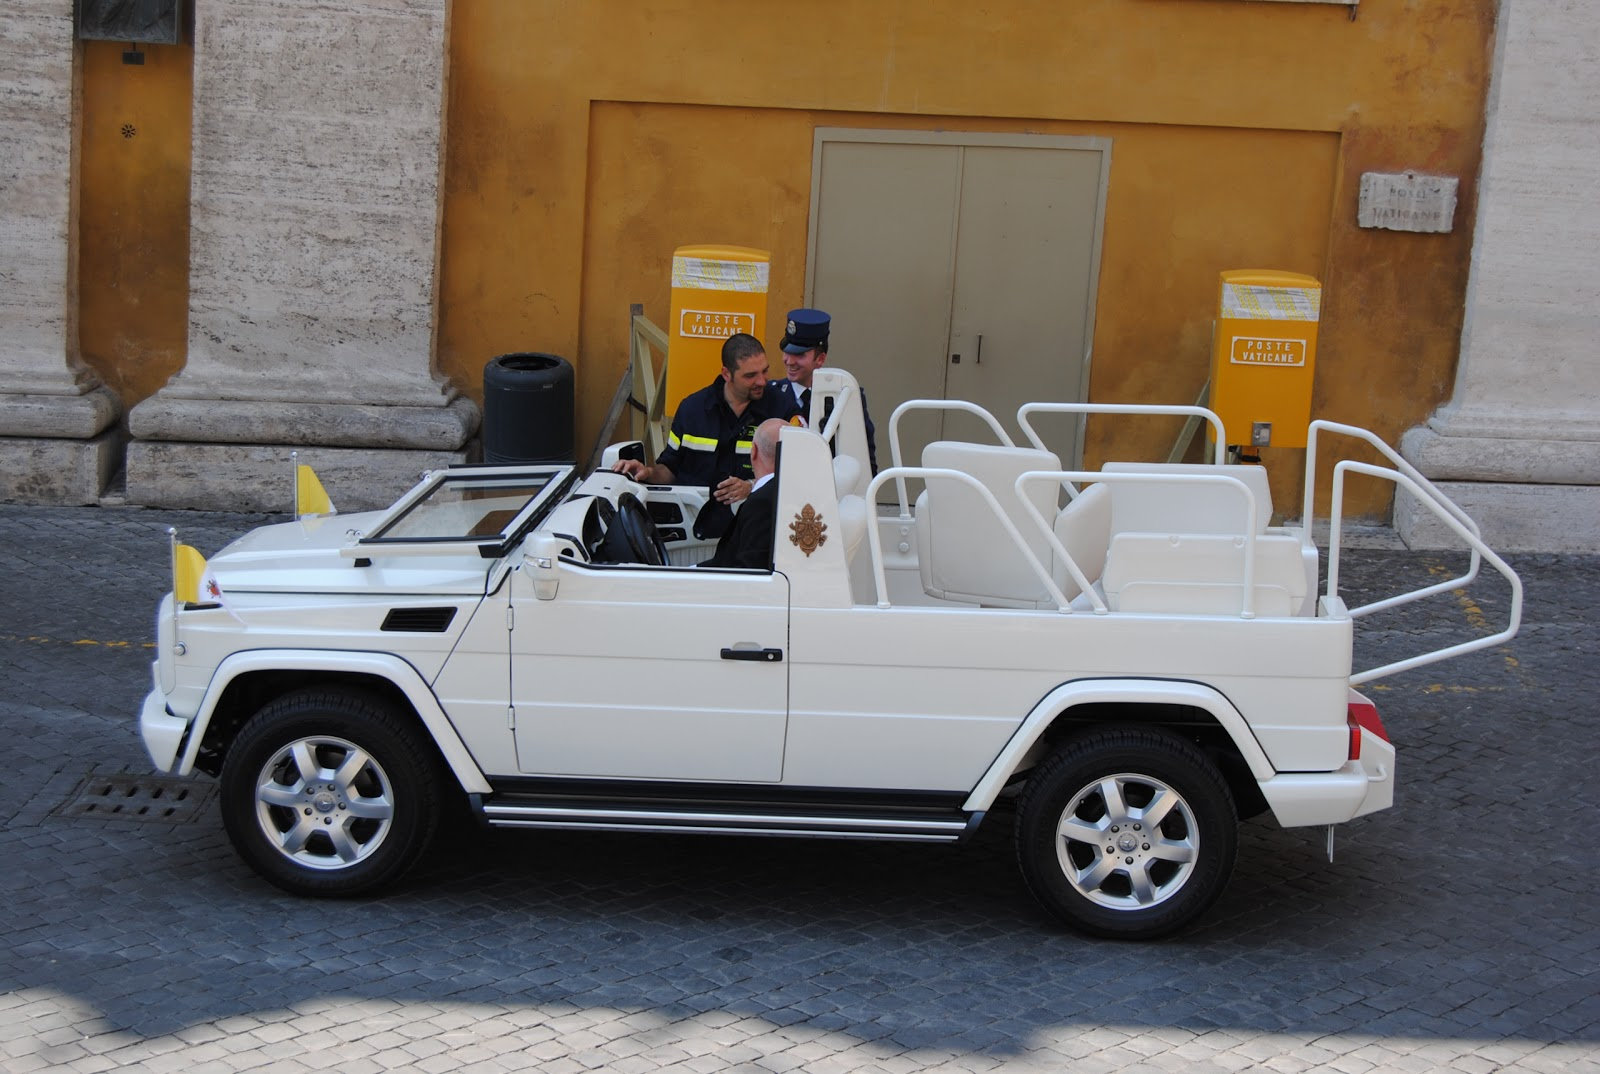 What was the jeep in pope #5